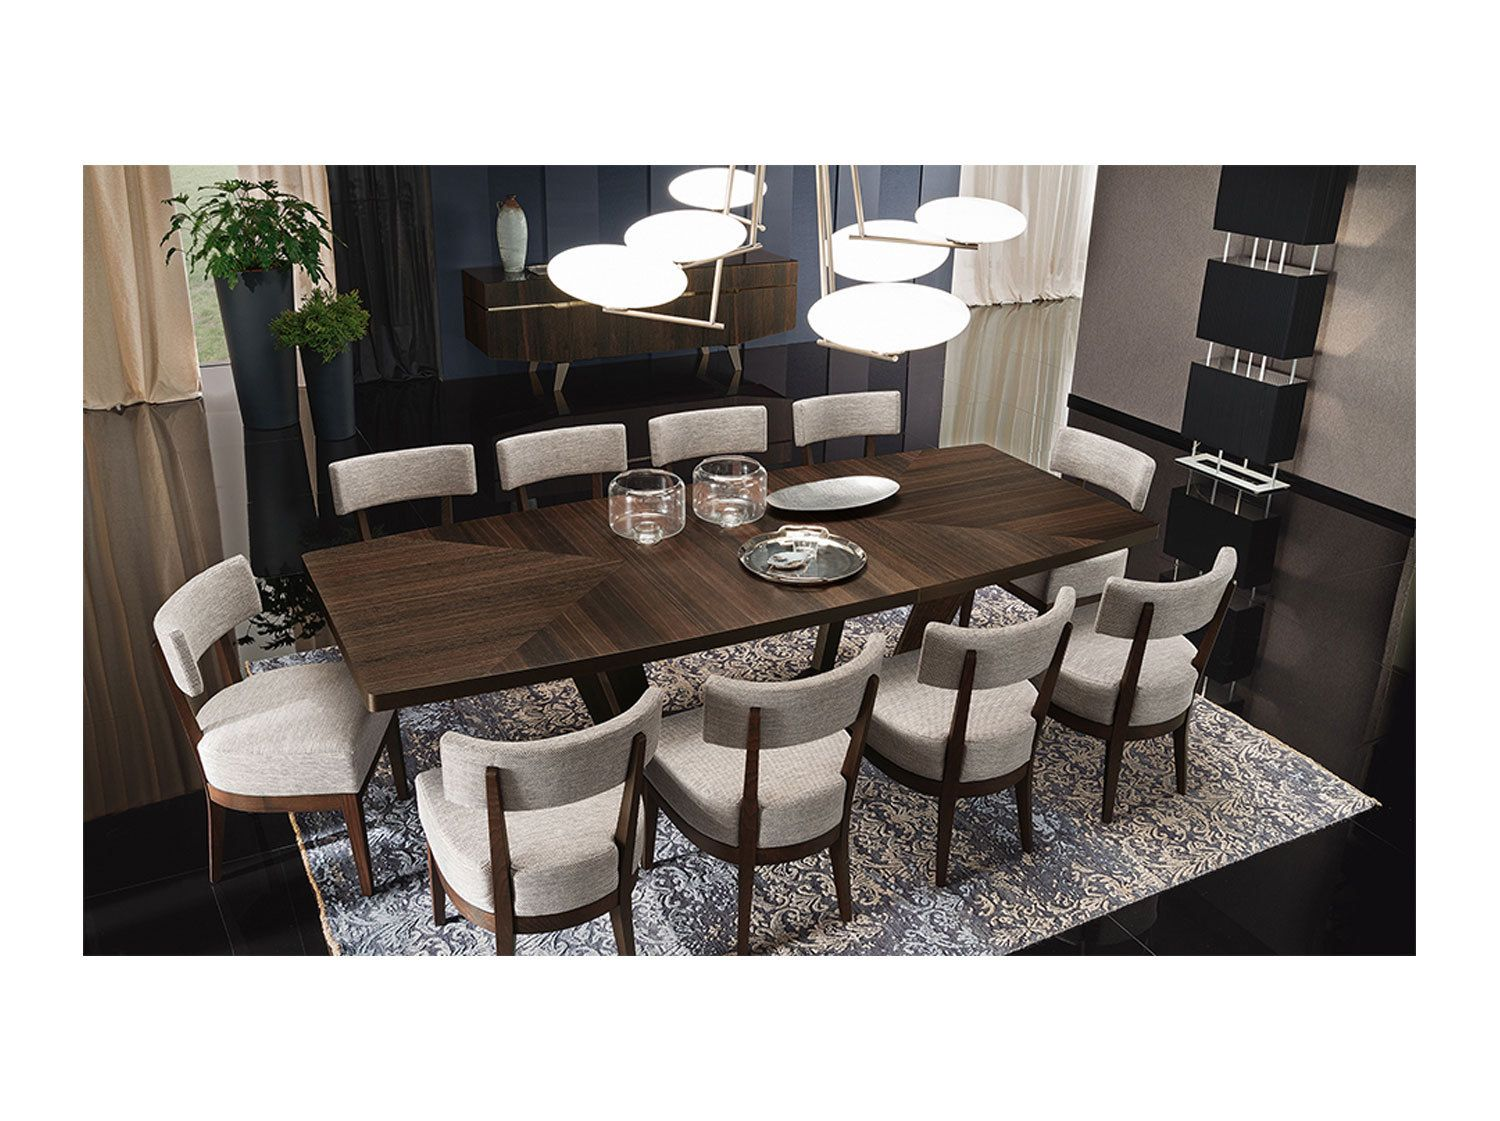 Academy Dining Table 208cm With One Leaf From Dansk Contemporary Dining Room Sets Dining Room Inspiration Contemporary Dining Room